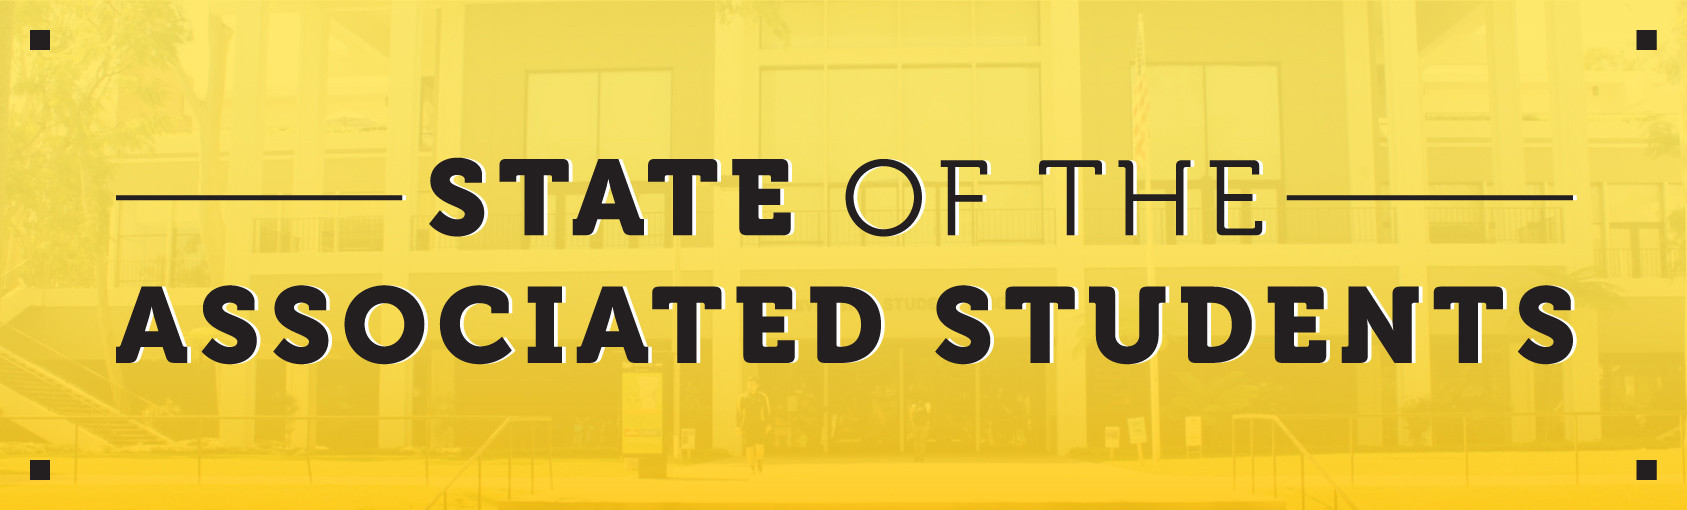 State of the Associated Students banner